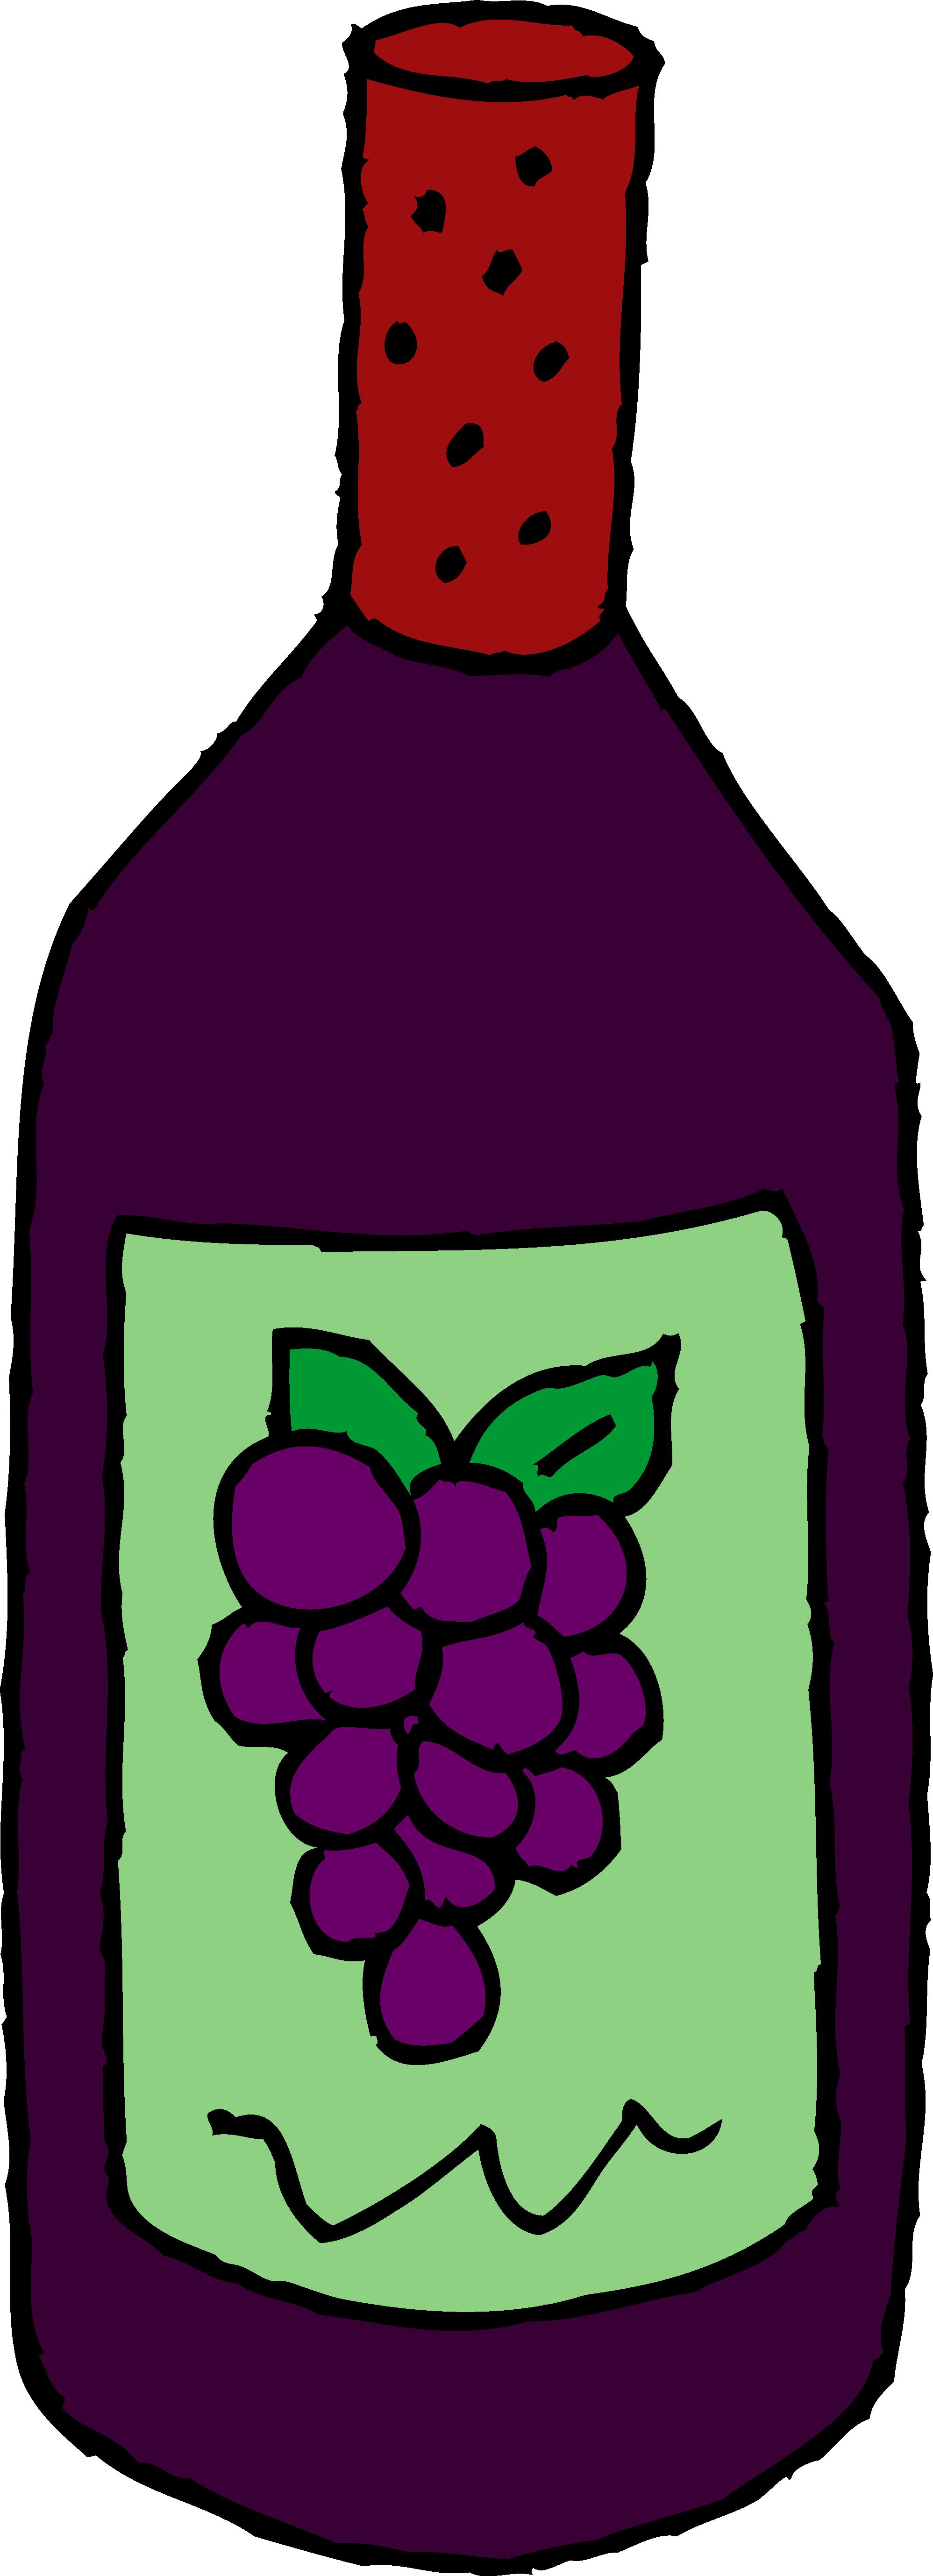 Bottle of Red Wine Clipart - Free Clip Art